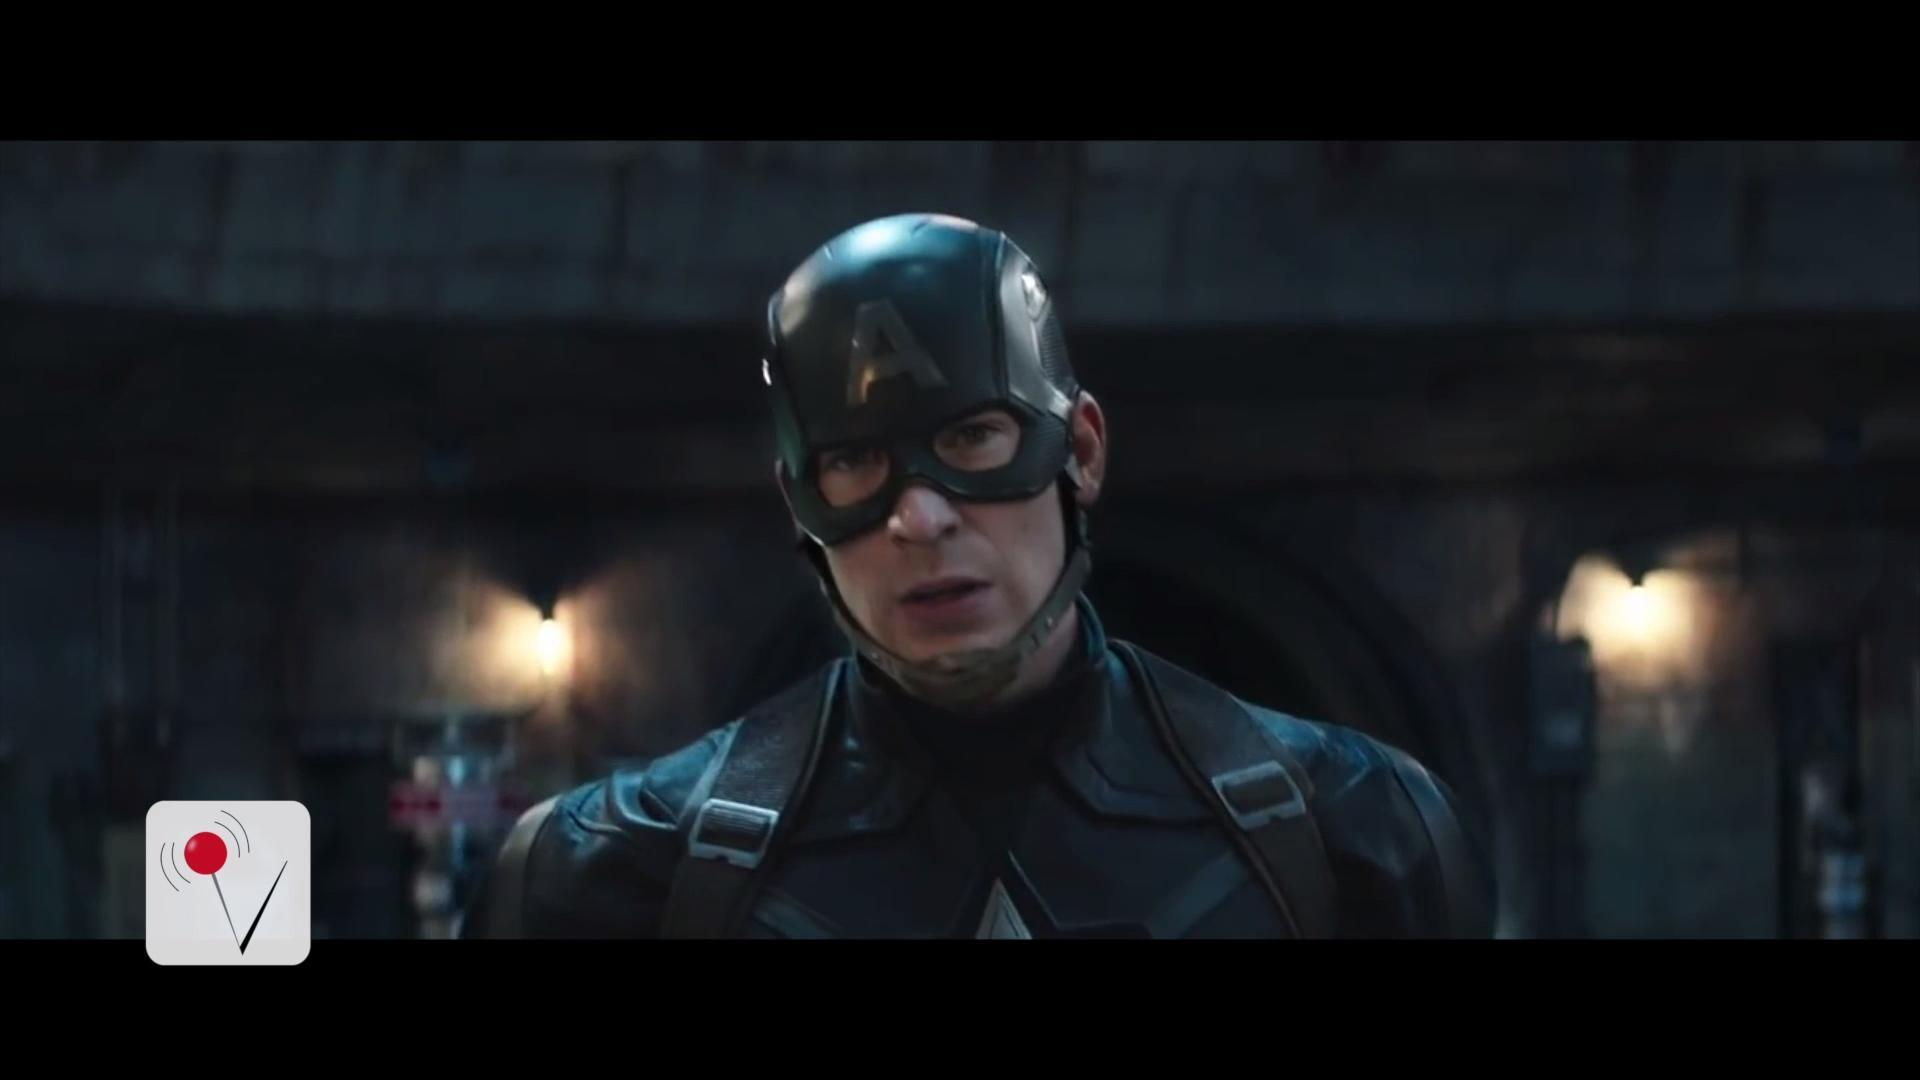 #GiveCaptainAmericaABoyfriend Trends on Twitter